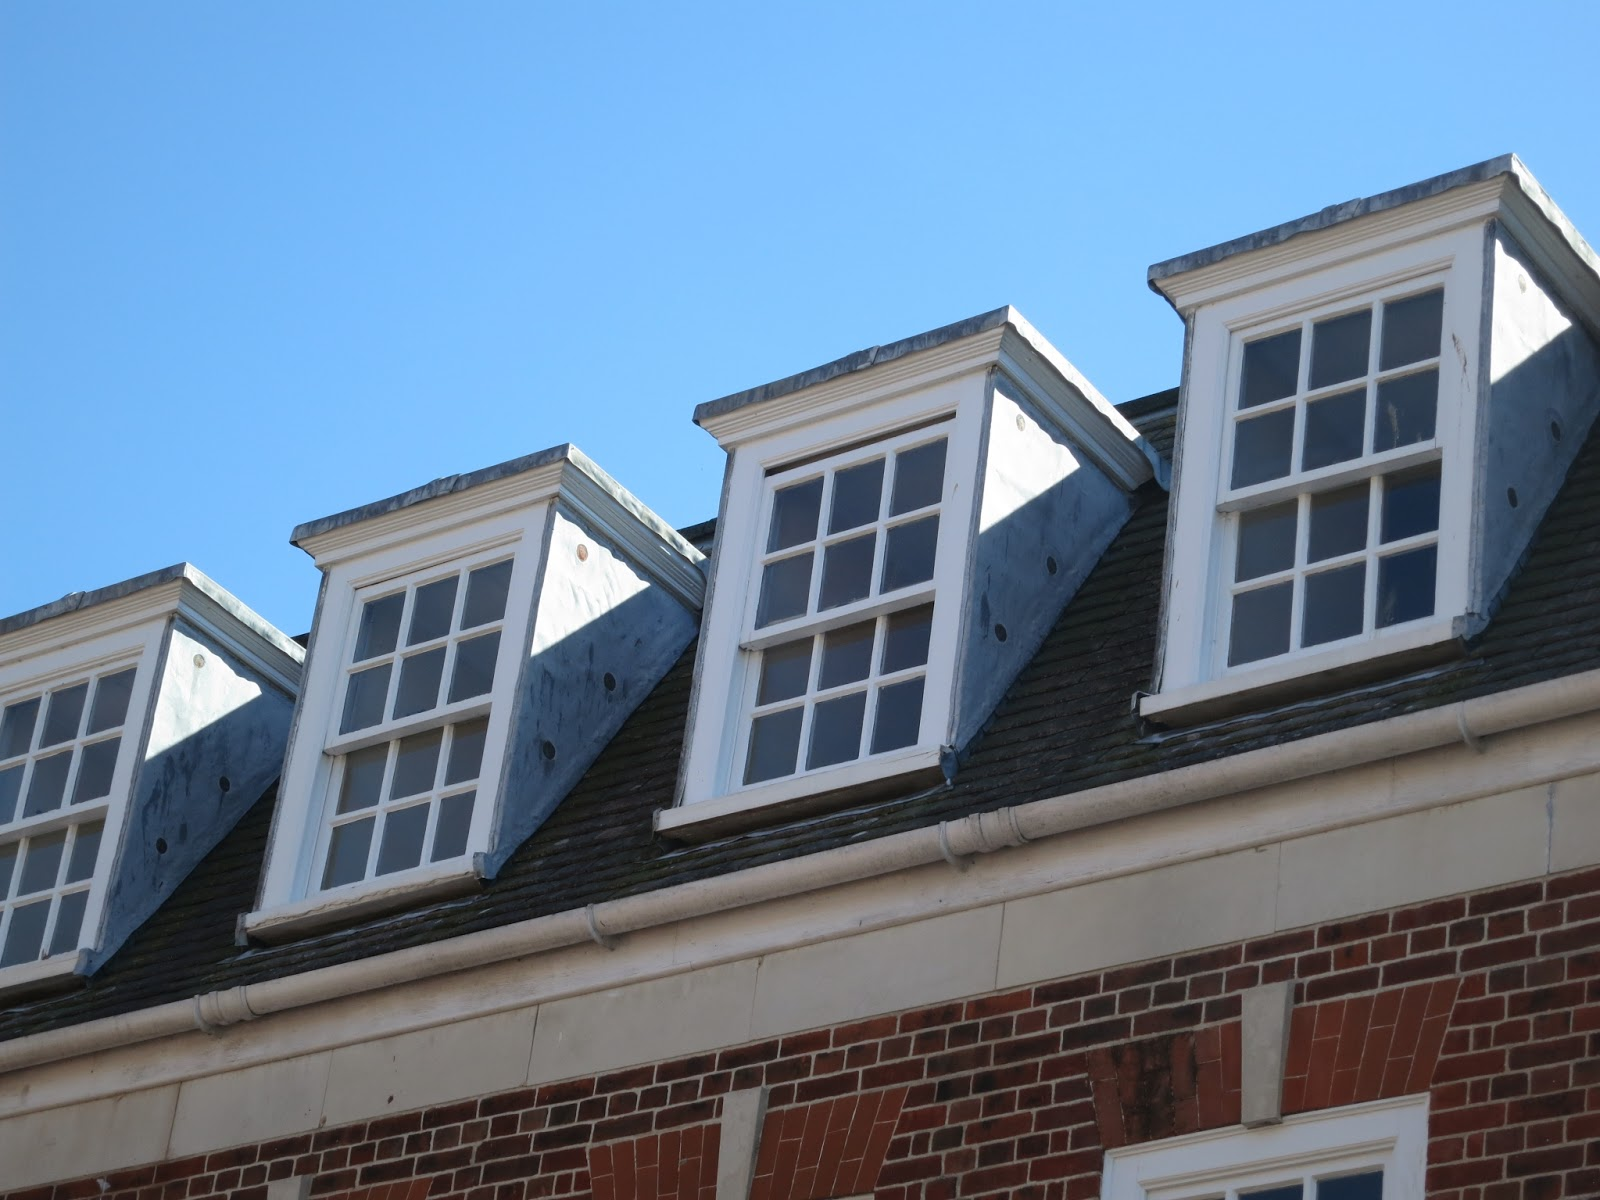 Four sash windows in the attic of a brick building.